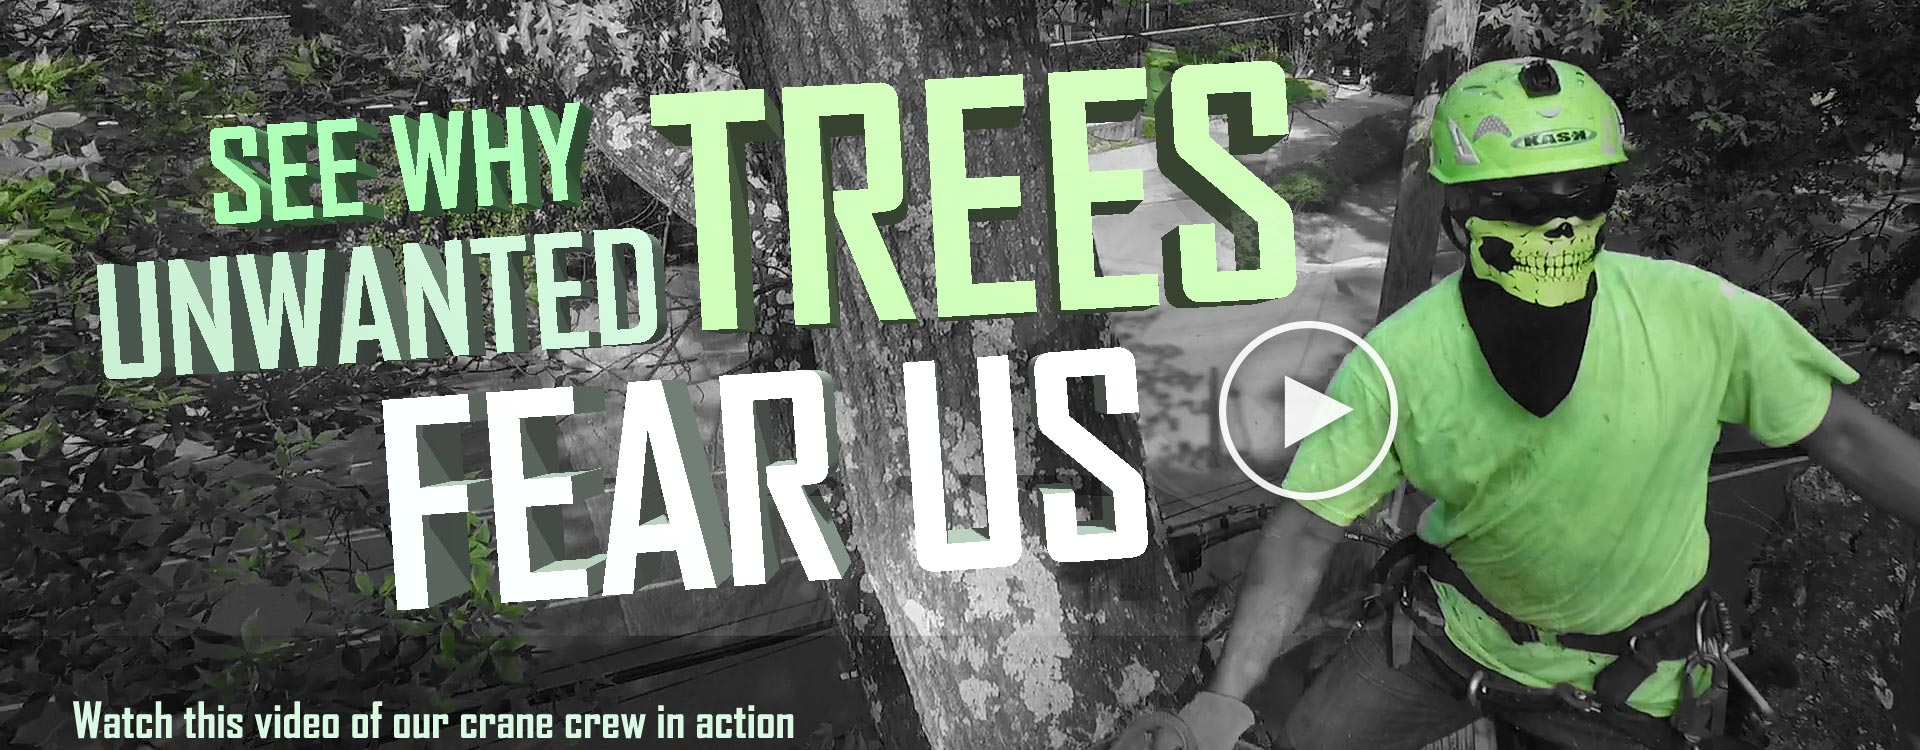 SEE WHY unwanted trees fear us